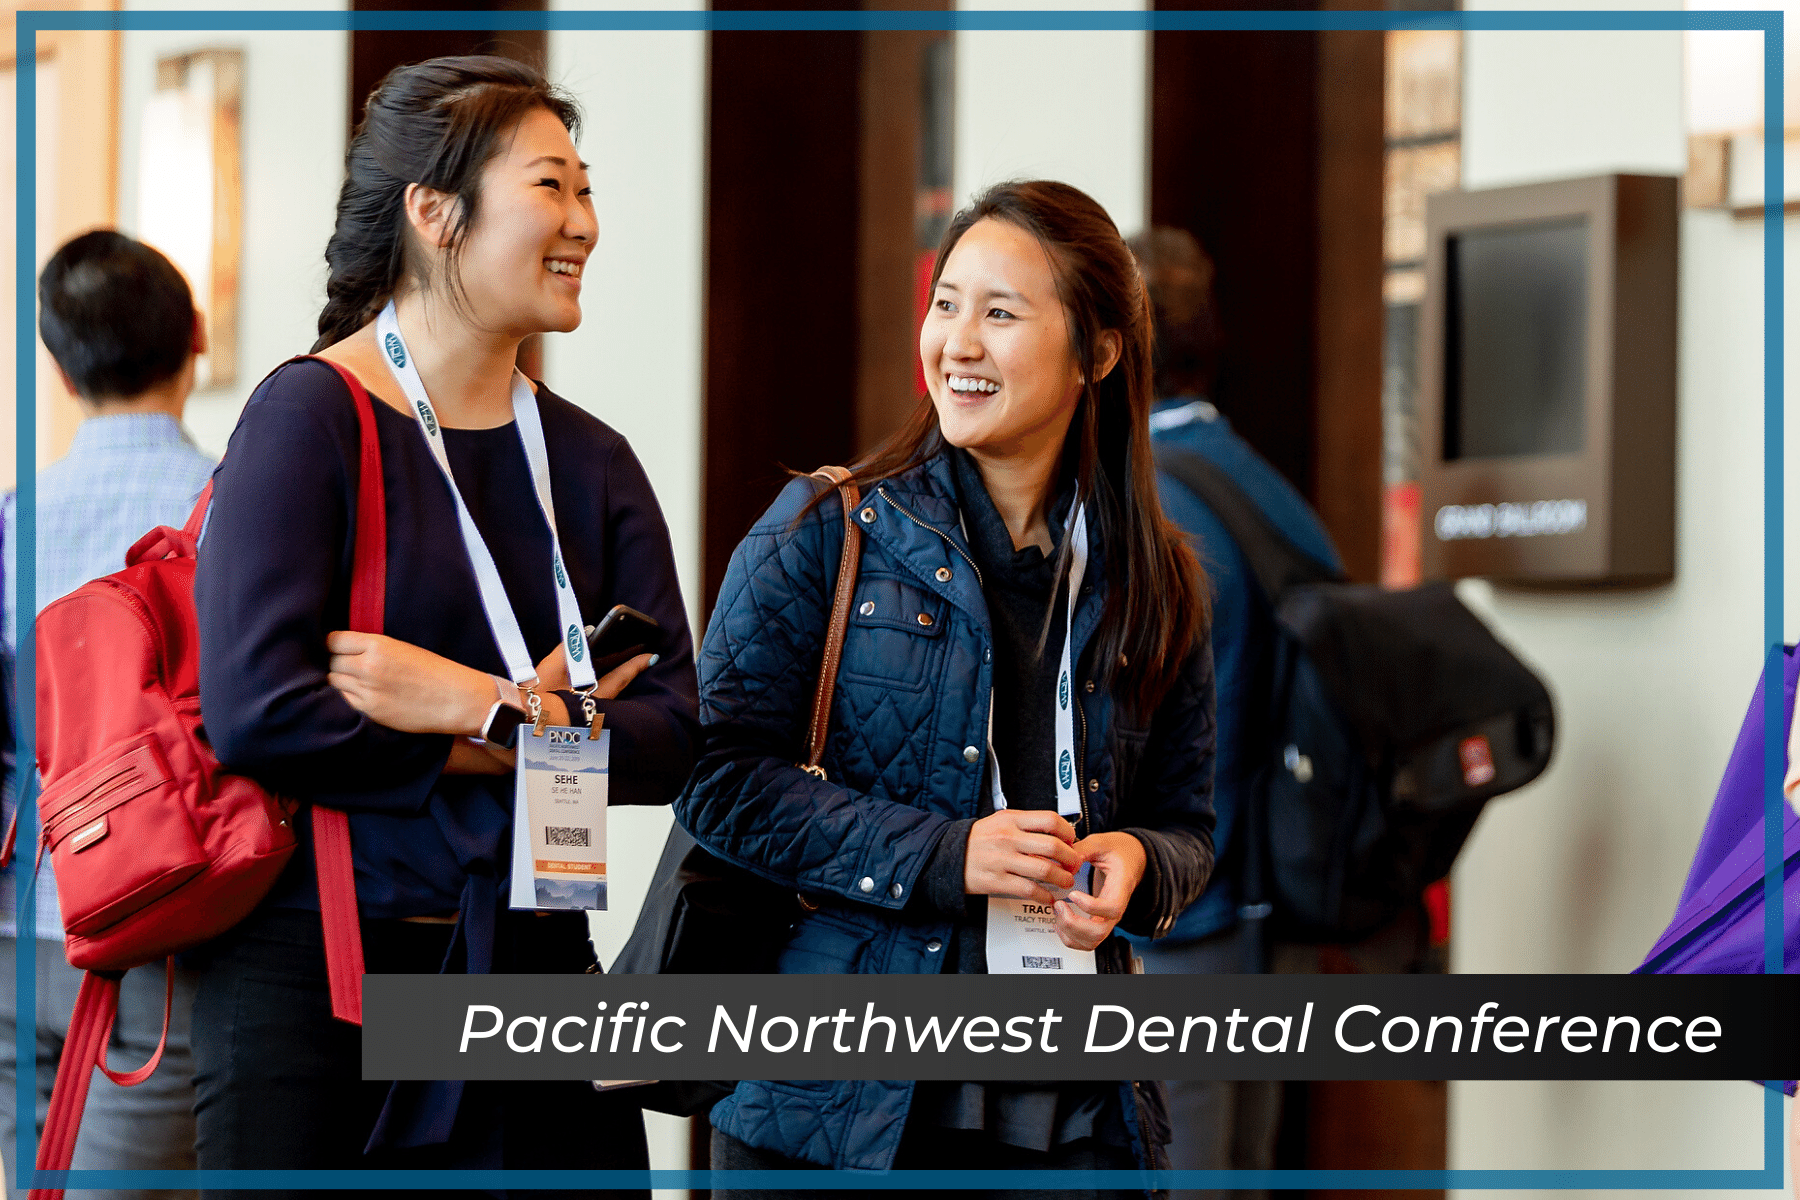 Pacific Northwest Dental Conference